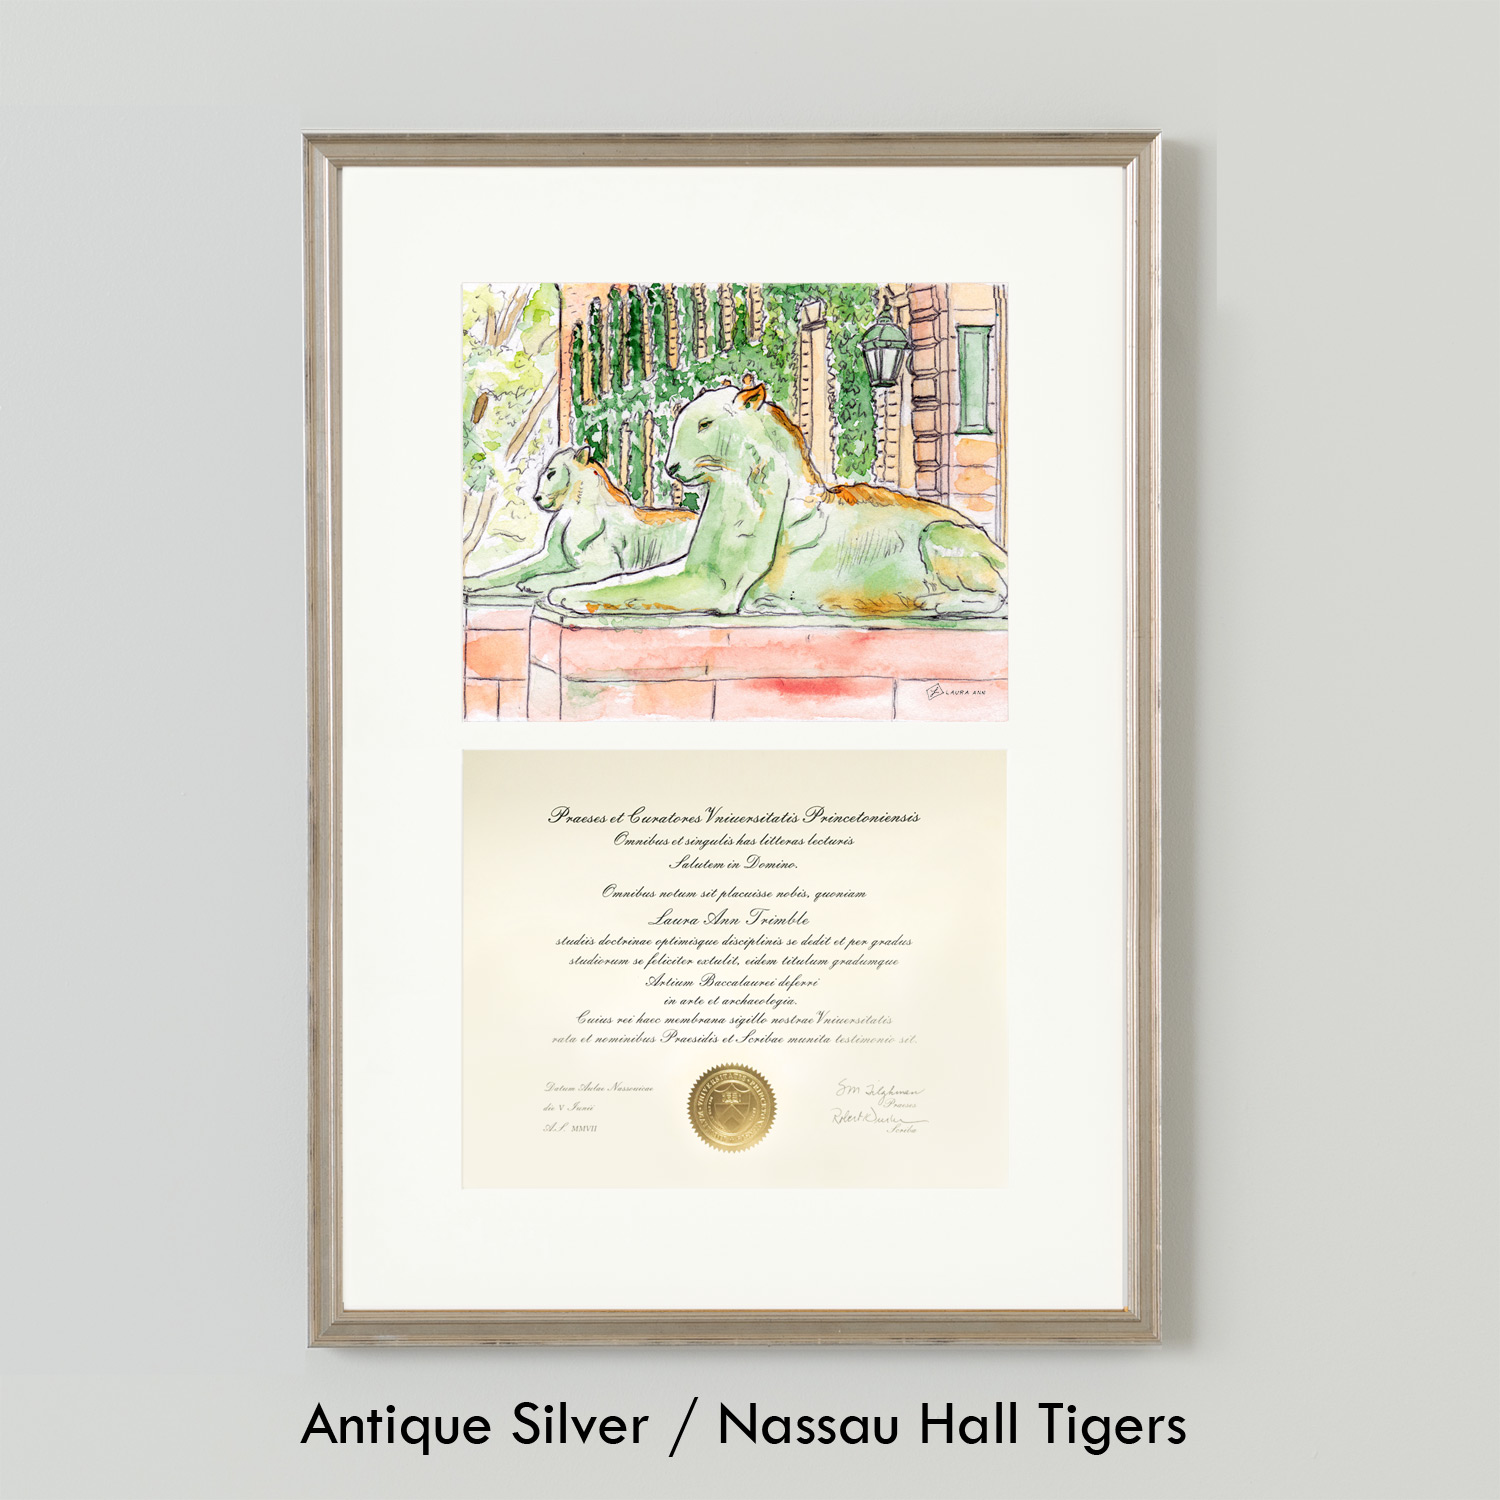 LAURA-ANN_Simply-Framed_Antique-Silver_Nassau-Hall-Tigers.jpg